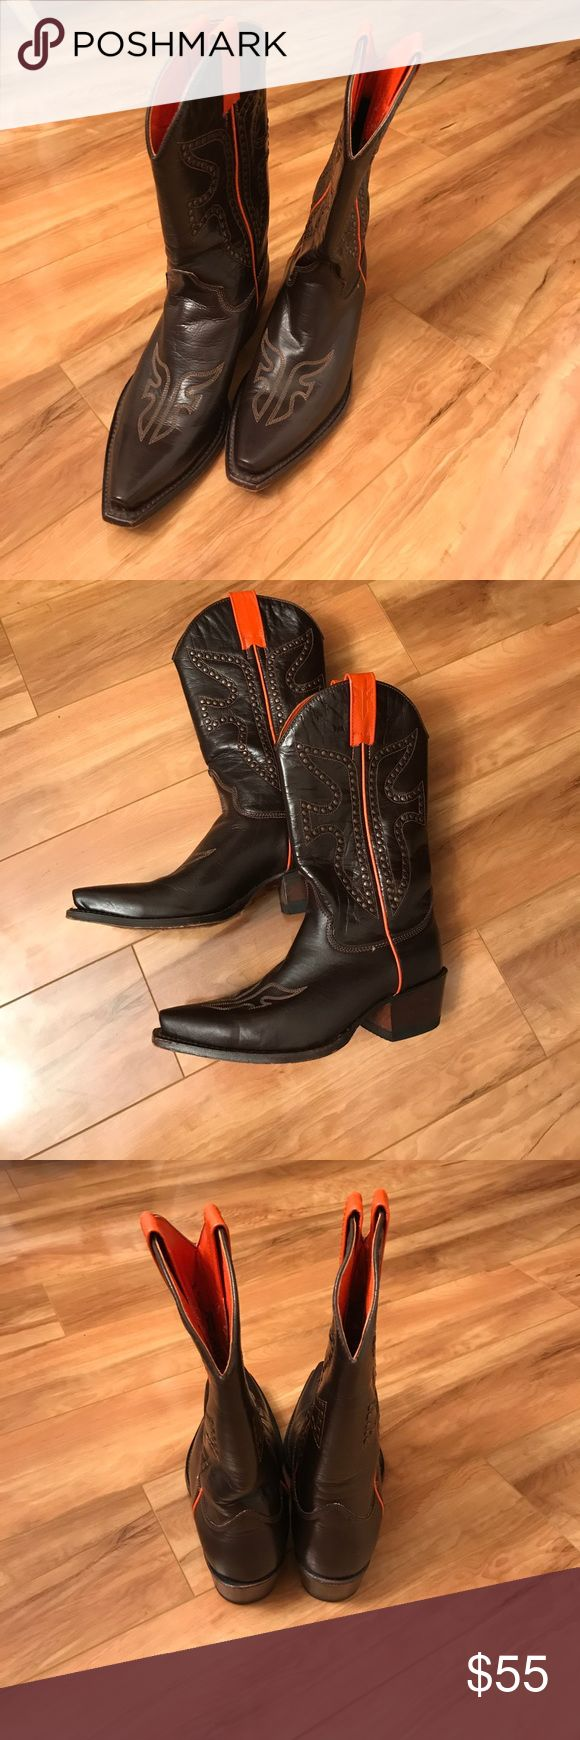 Frye cowboy boots Frye cowboy boots, western cowboy style. Dark brown leather with beaded style. Frye Shoes Heeled Boots